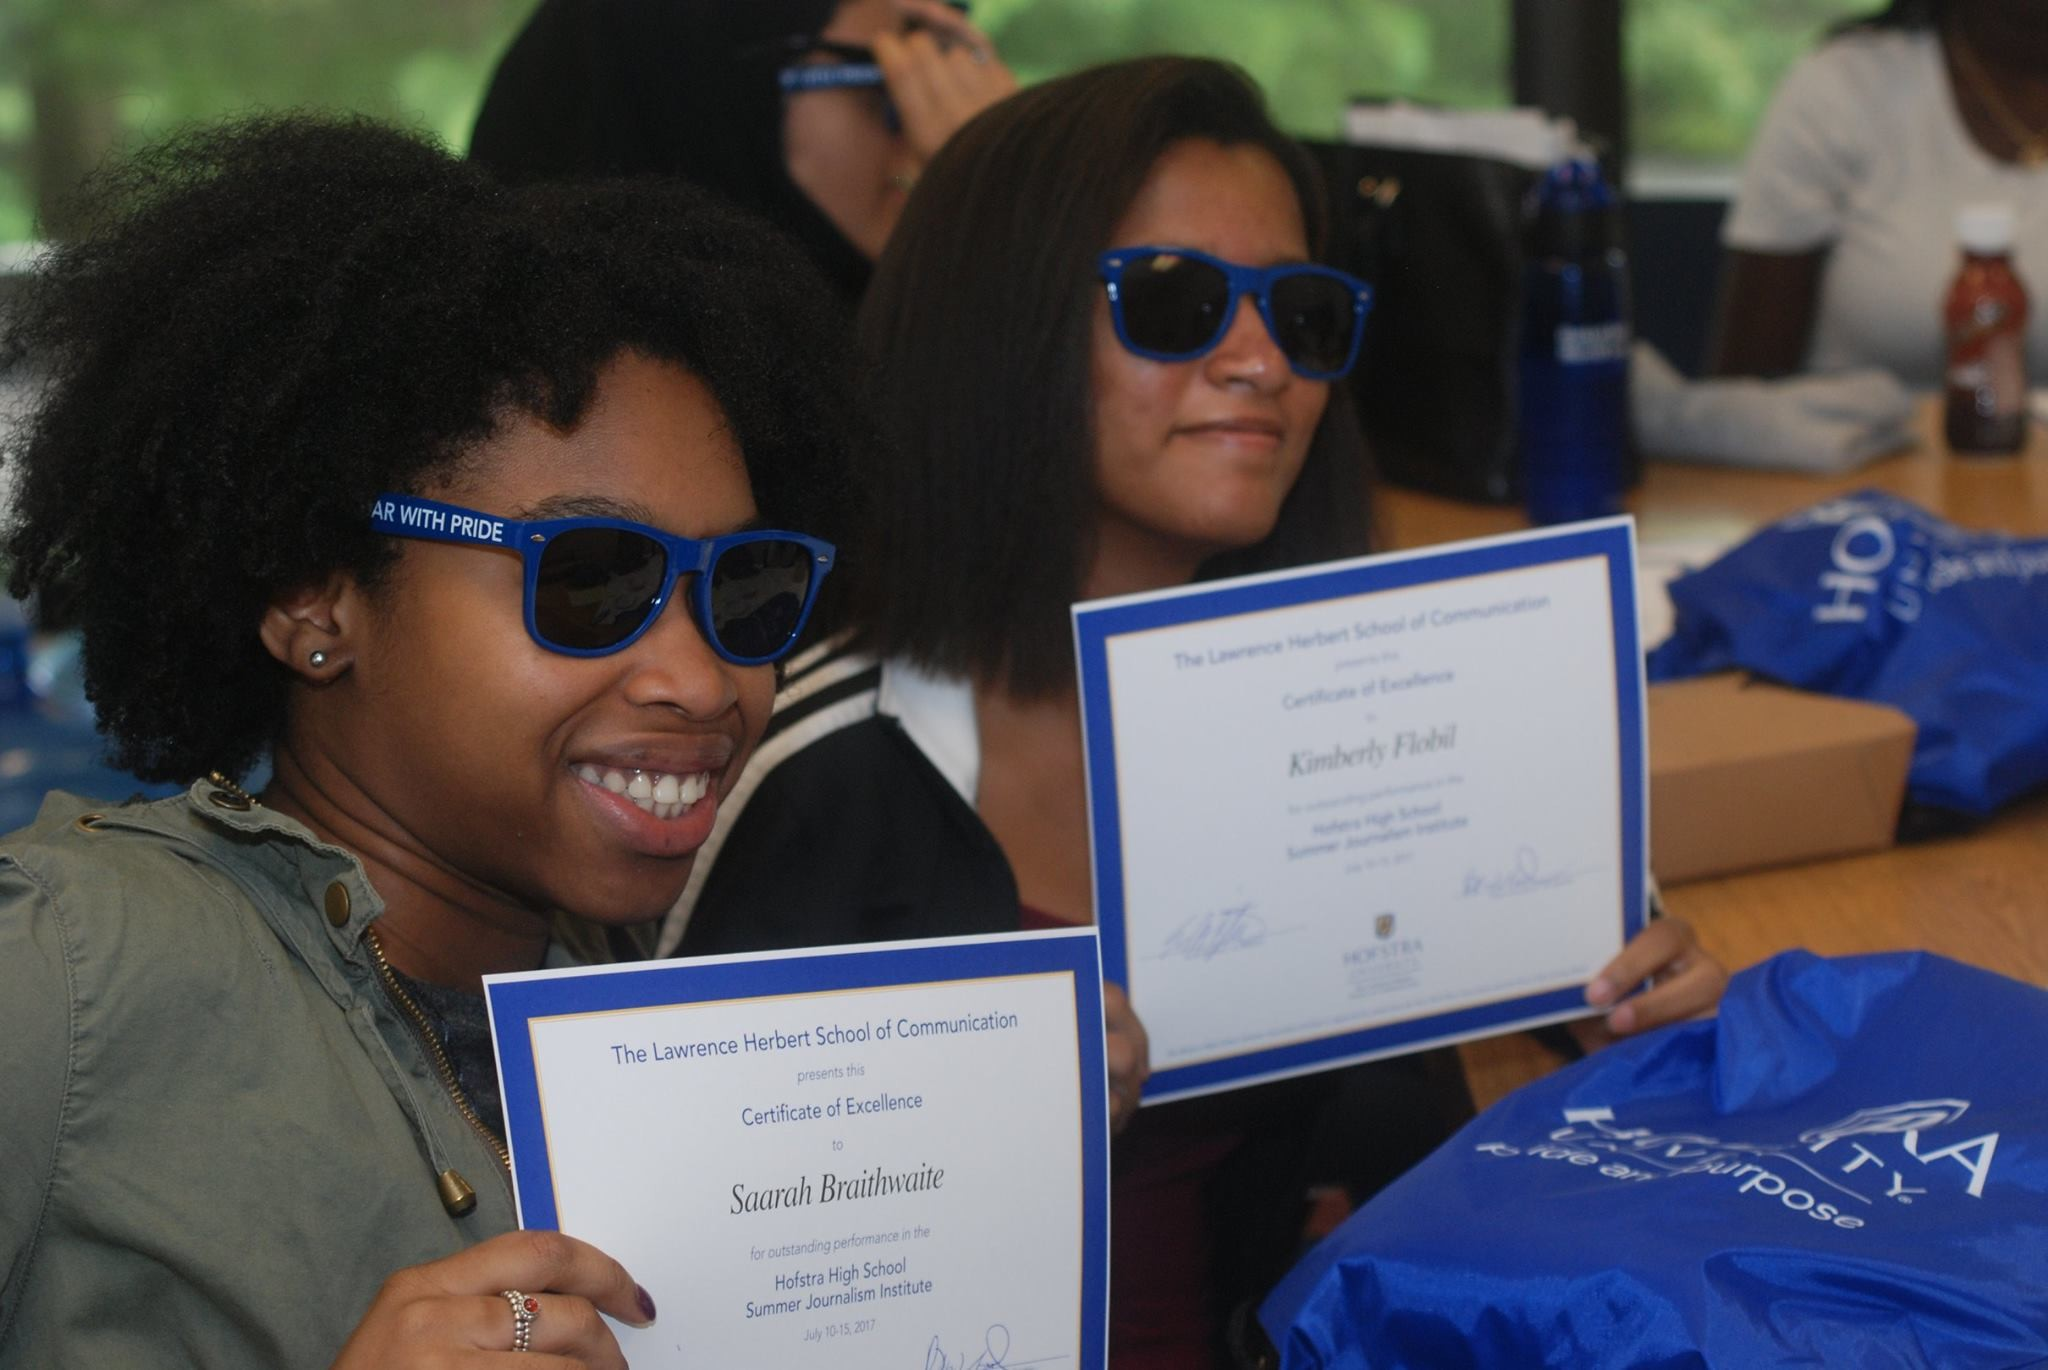 Saarah Braithwaite, left, and Kimberly Flobil, both of Elmont High School, showed off their certificates and Hofstra University gear after recently completing the High School Summer Journalism Institute.